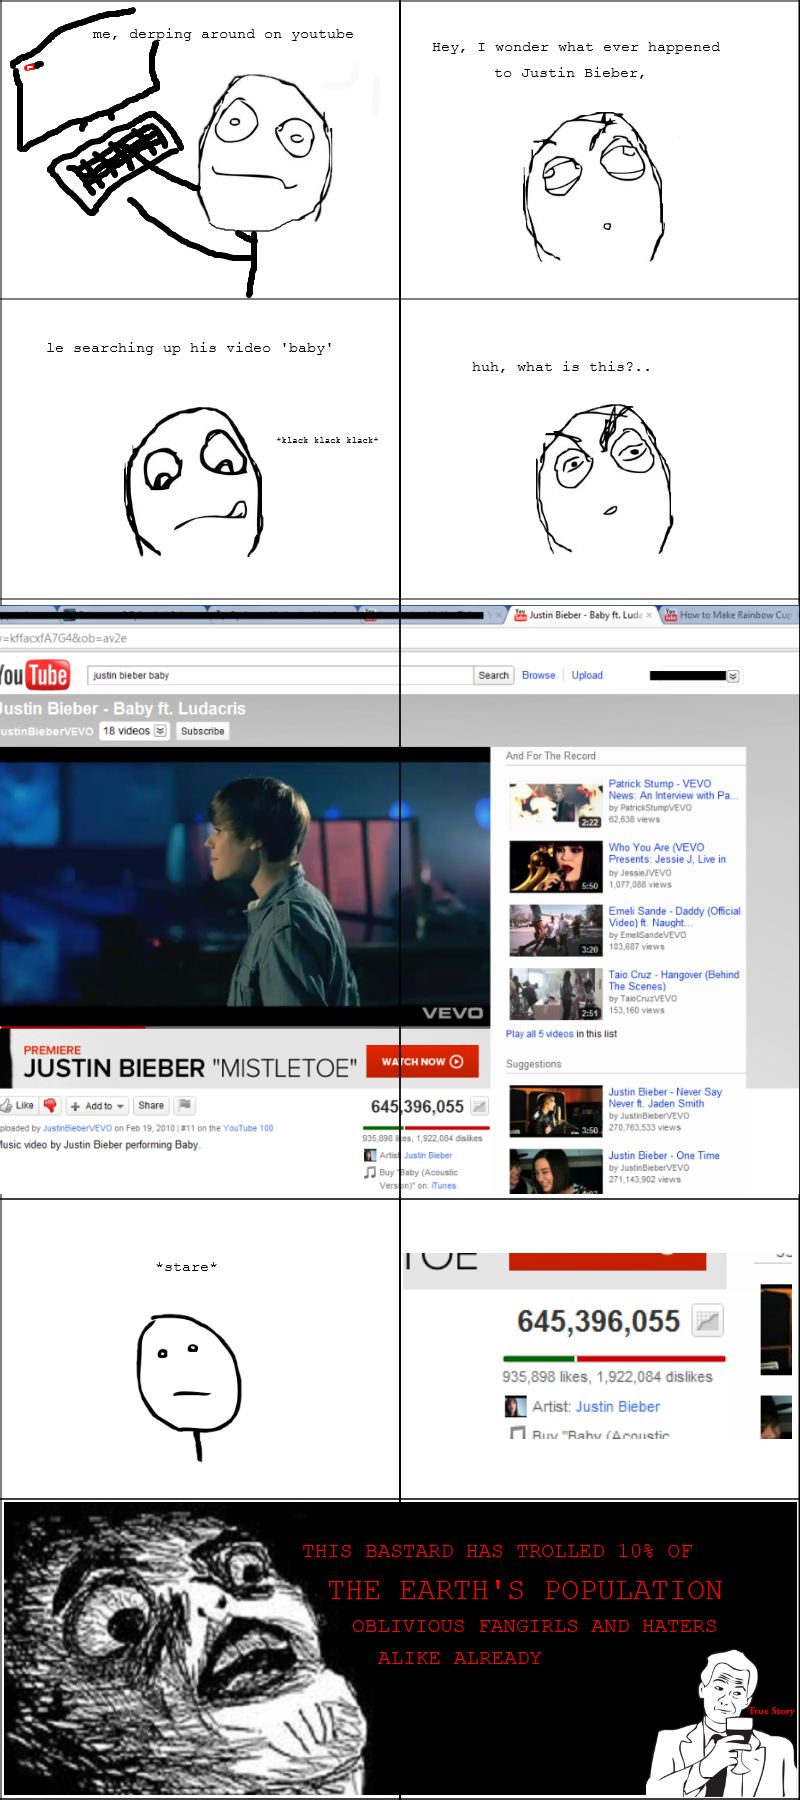 Troll Bieber. my first comic . me, dar ing around an youtube Hey, I wonder what ever happened ta Justin Either, searching up his video 'baby' huh, what is this'